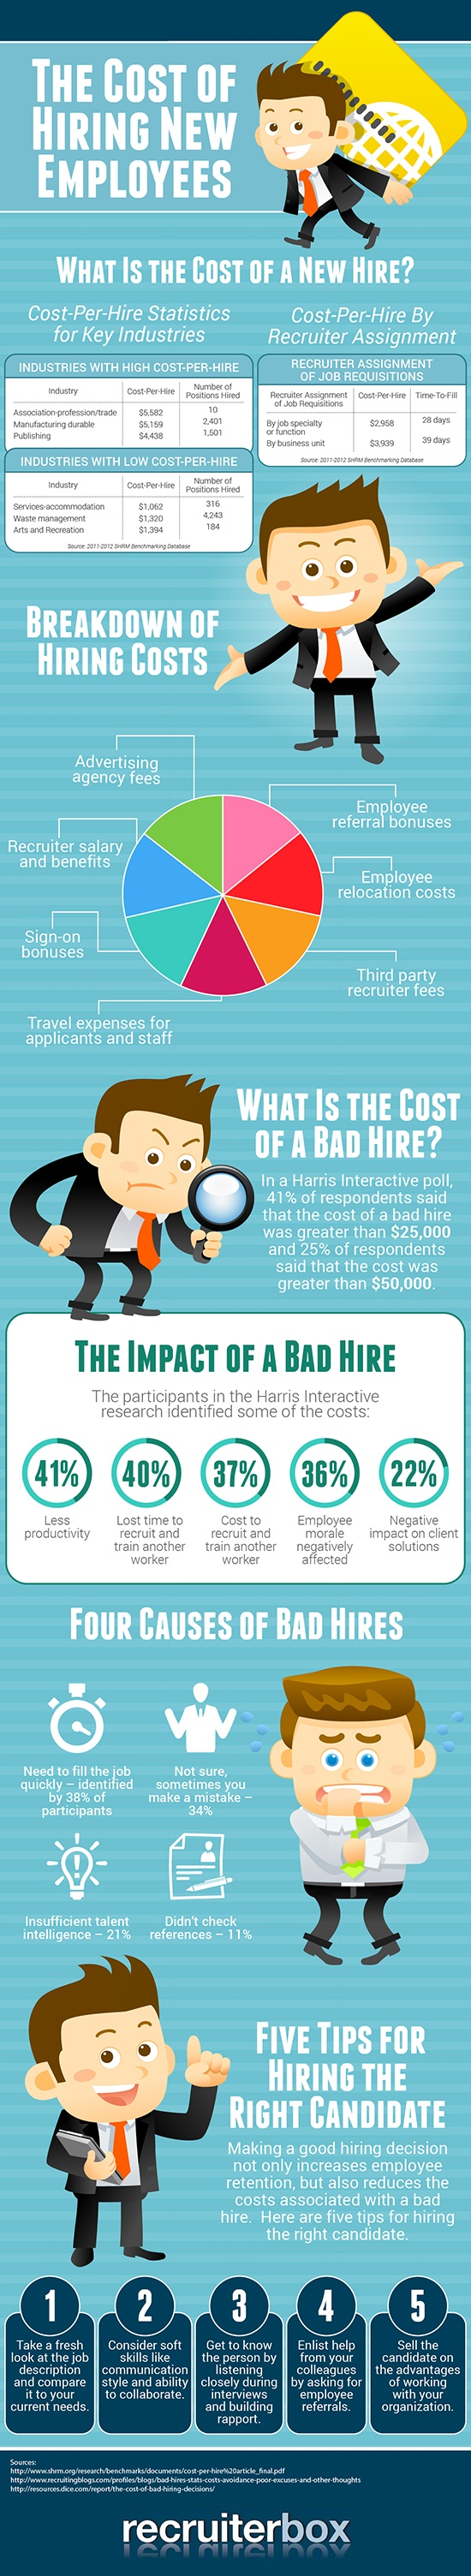 new-employee-hiring-cost-infographic-recruiterbox3.jpg